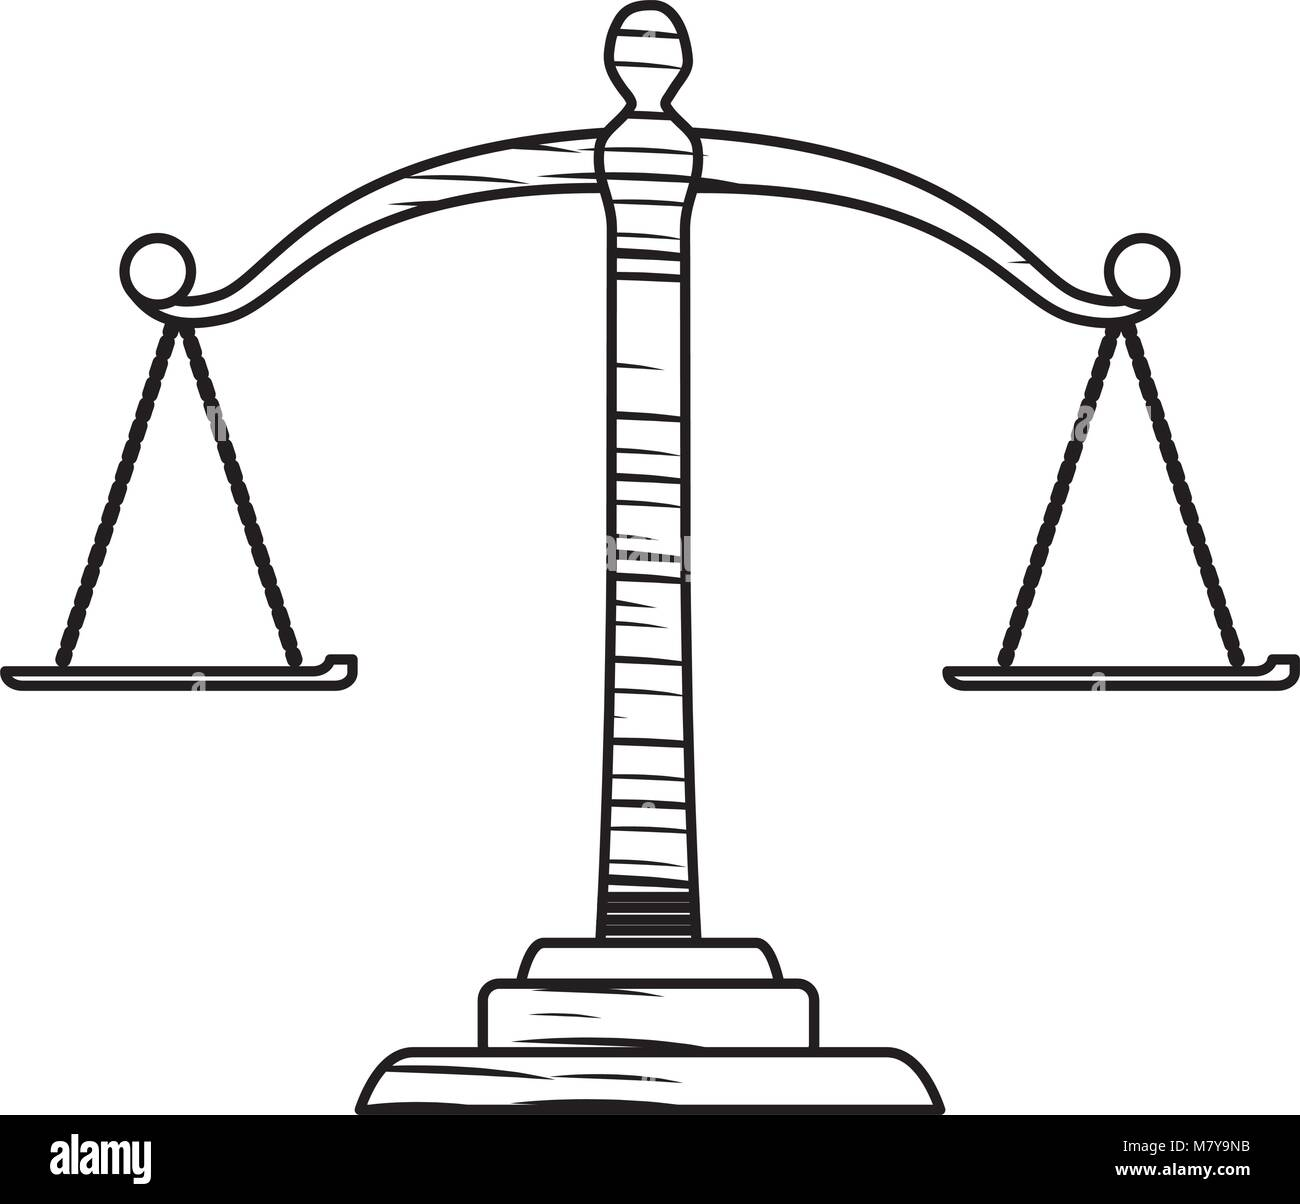 sketch of law scale icon over white background, vector illustration